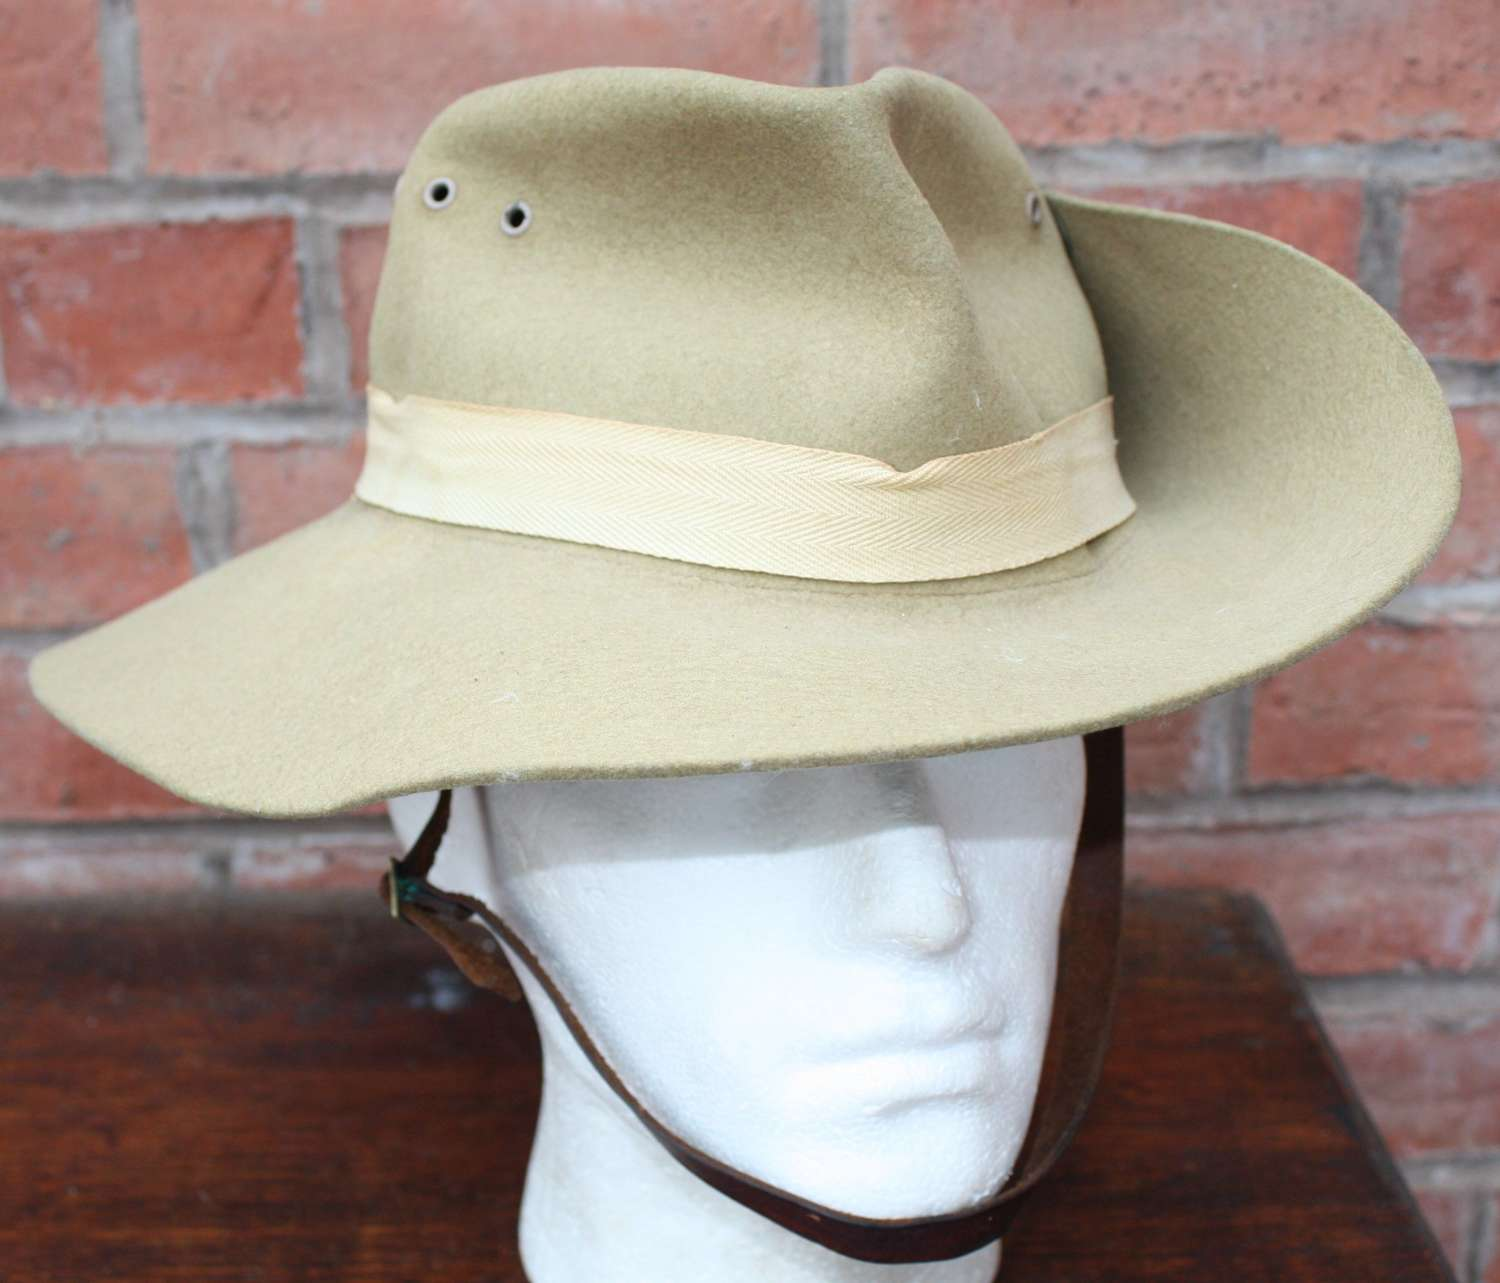 WW2 British/ Australian Slouch Hat dated 1943